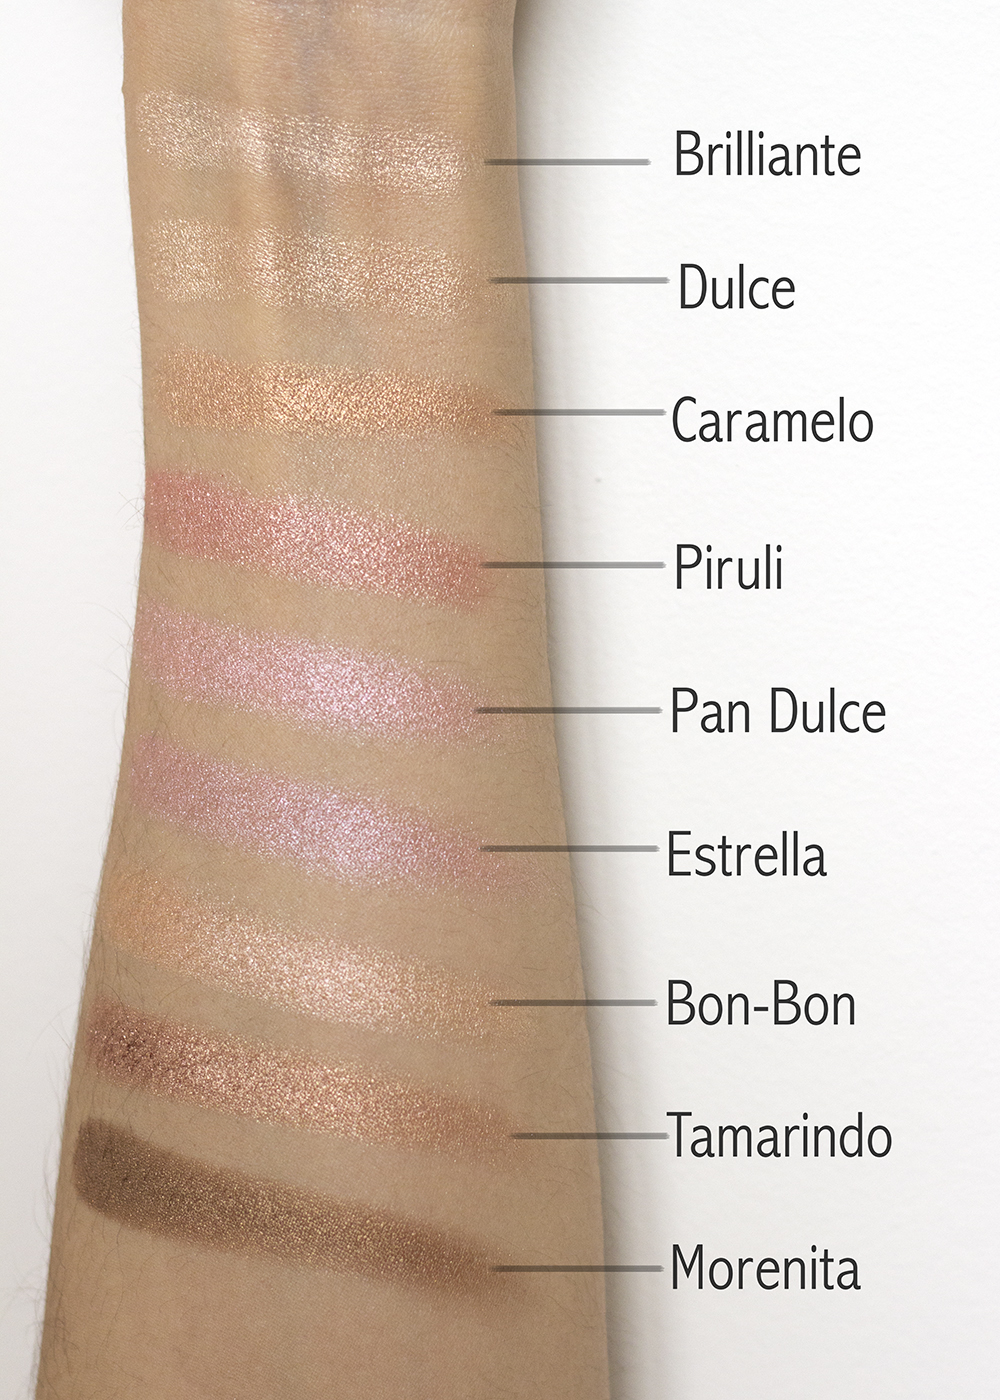 Pixi Beauty Cafe Con Dulce Palette Swatches